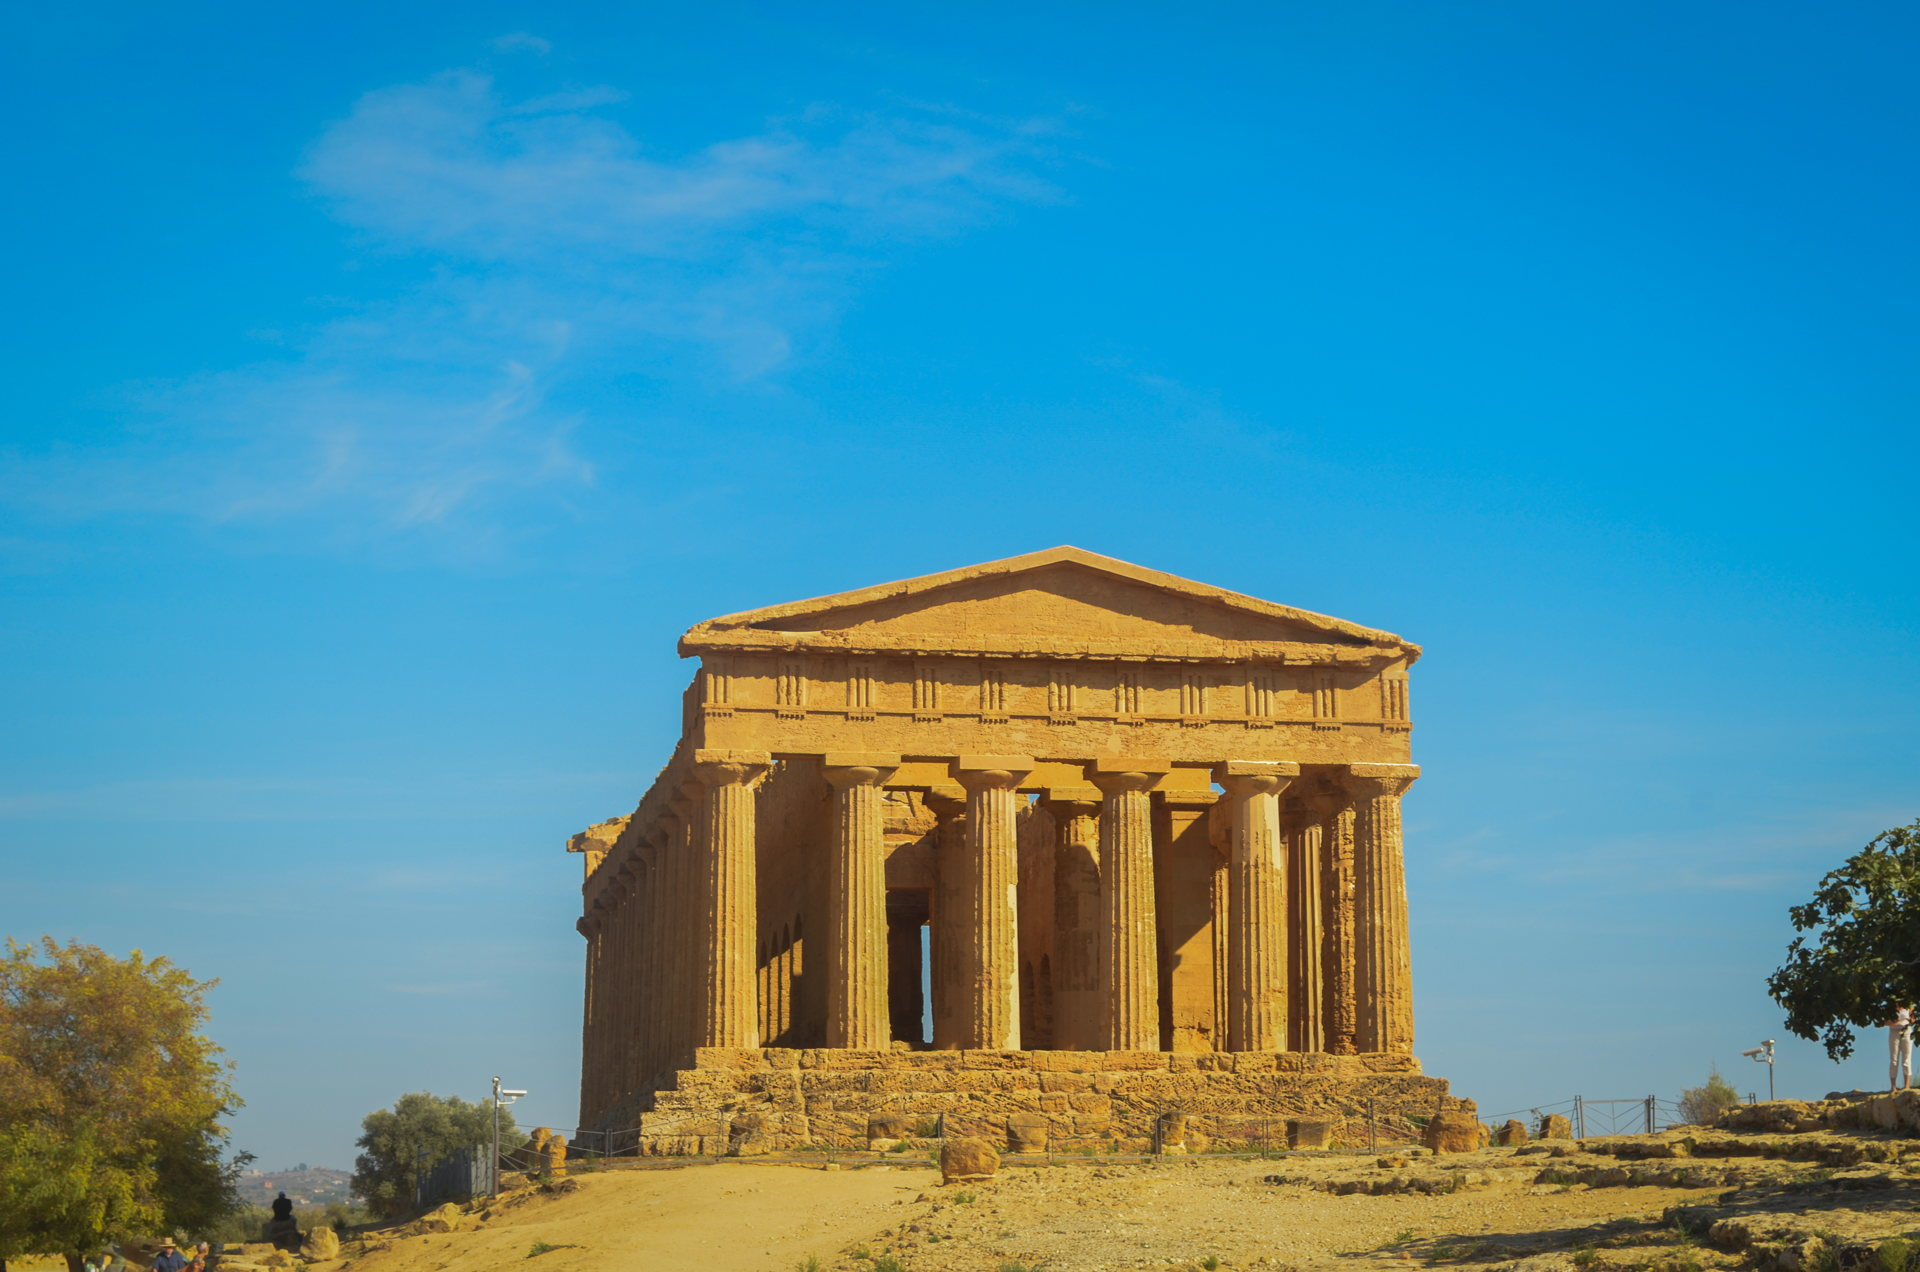 greek city, agrigento, ancient greek city, ancient greece, agrigento travel, best places to visit in sicily, sicily italy, what to do in sicily, traveling in sicily, best of sicily, akragas, Valle dei Templi